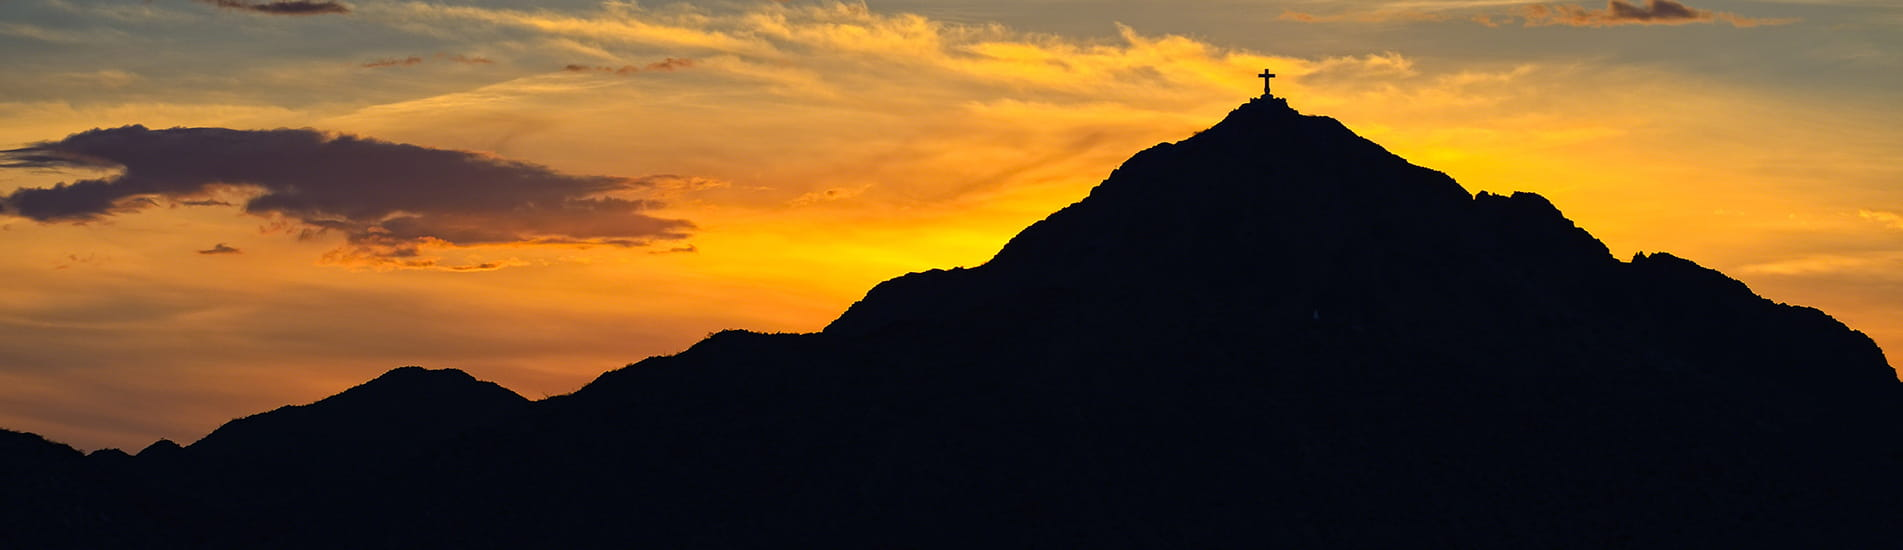 A mountain silhouette with a cross at the peak against an auburn sunset.